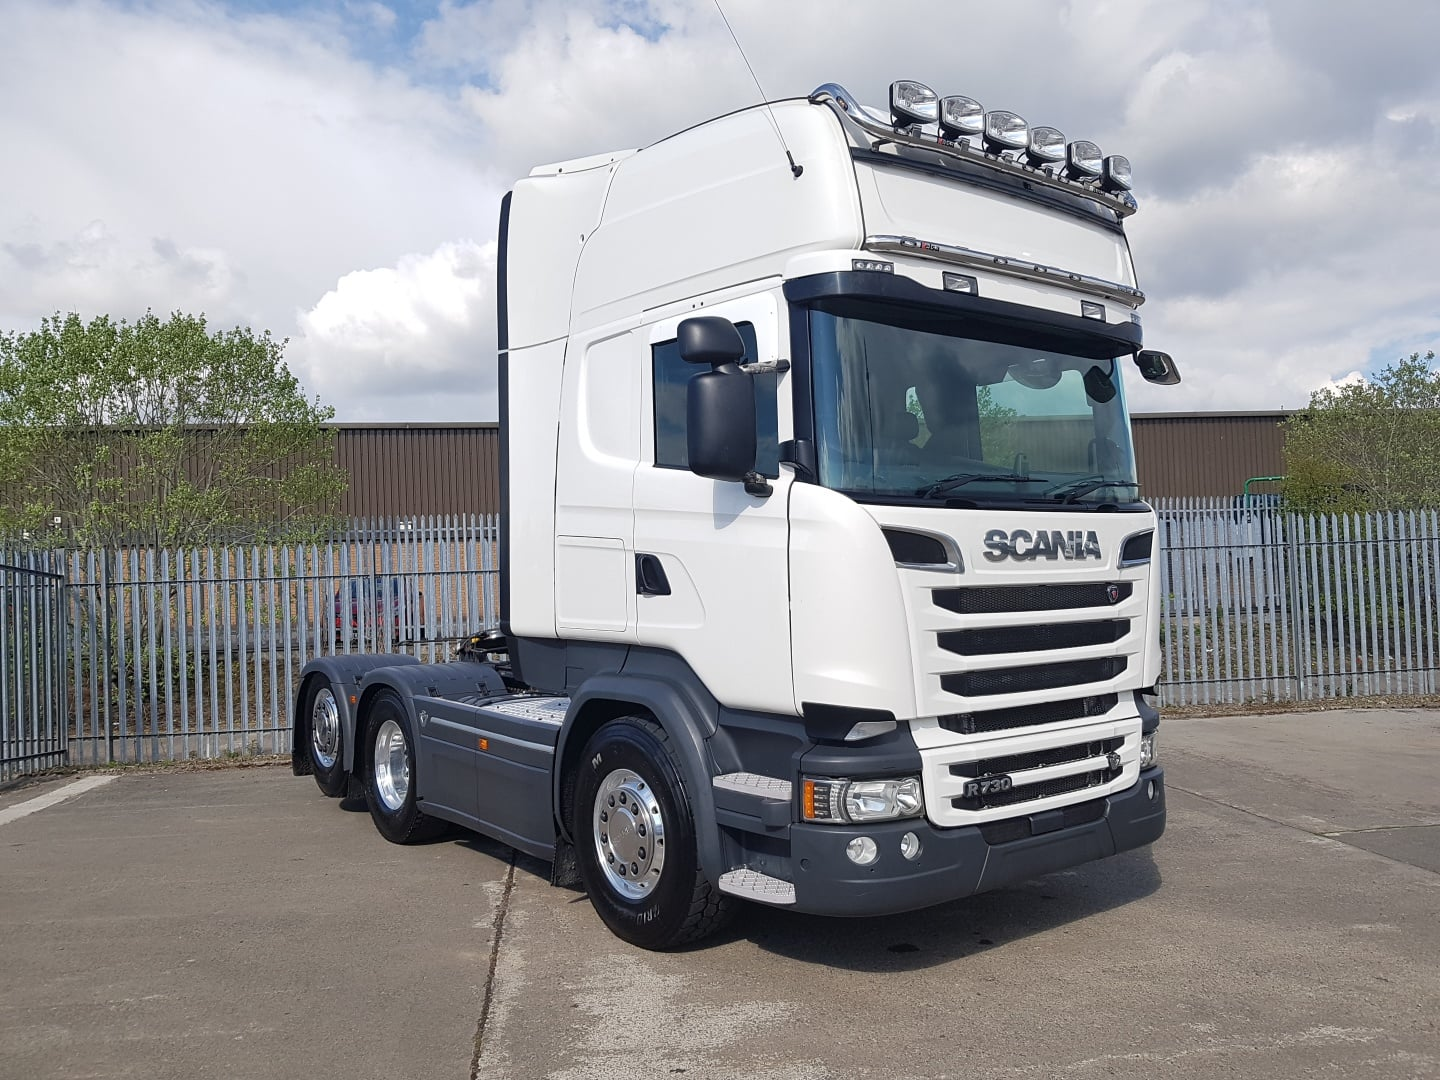 2016 Scania Topline. Euro 6, 730bhp, Rear Lift Axle, 2 Pedal Opticruise Gearbox, Twin Fuel Tanks (810 Litre Capacity), Twin Cab Lockers, Sleeper Cab, Light Bars, Durabright Alloys, Xenon Headlights, Retarder, Fridge/Freezer, Microwave, Griffin Package, Leather Seats, MOT - 04/21, Warranty Available.